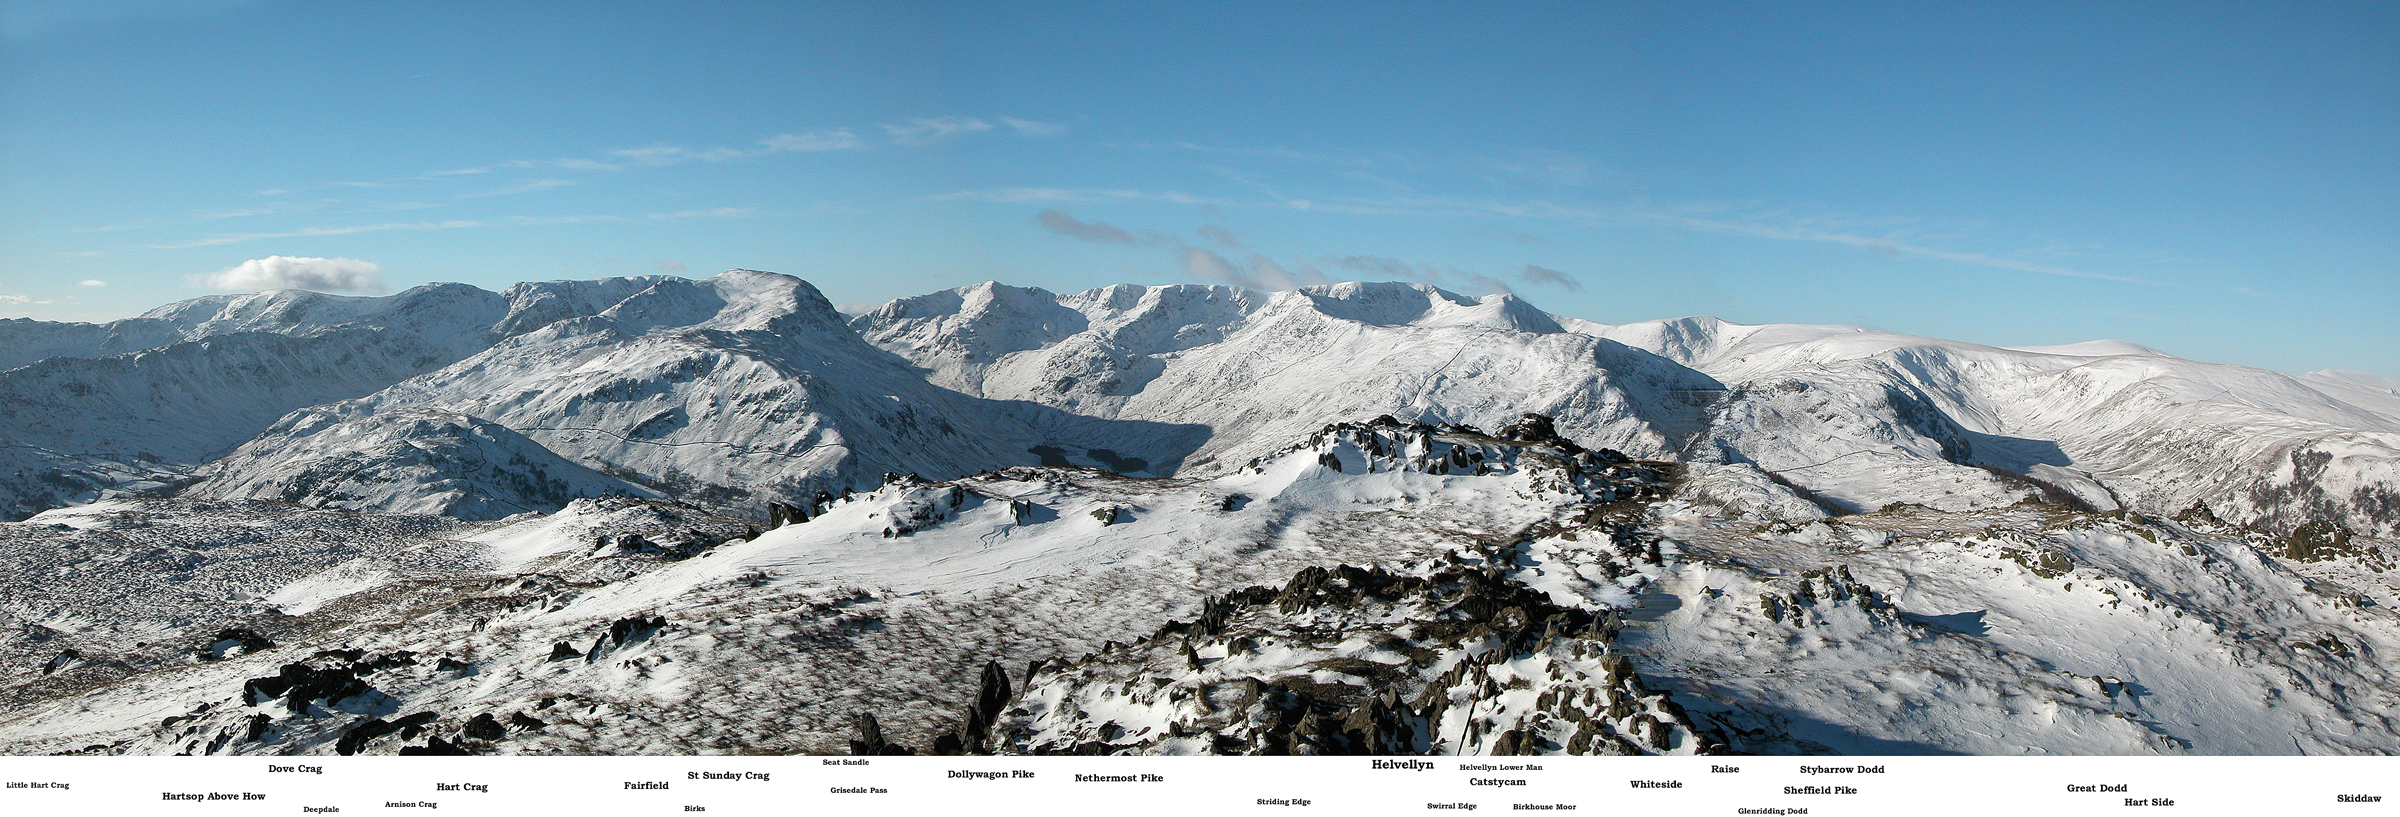 Helvellyn from Place Fell Panorama